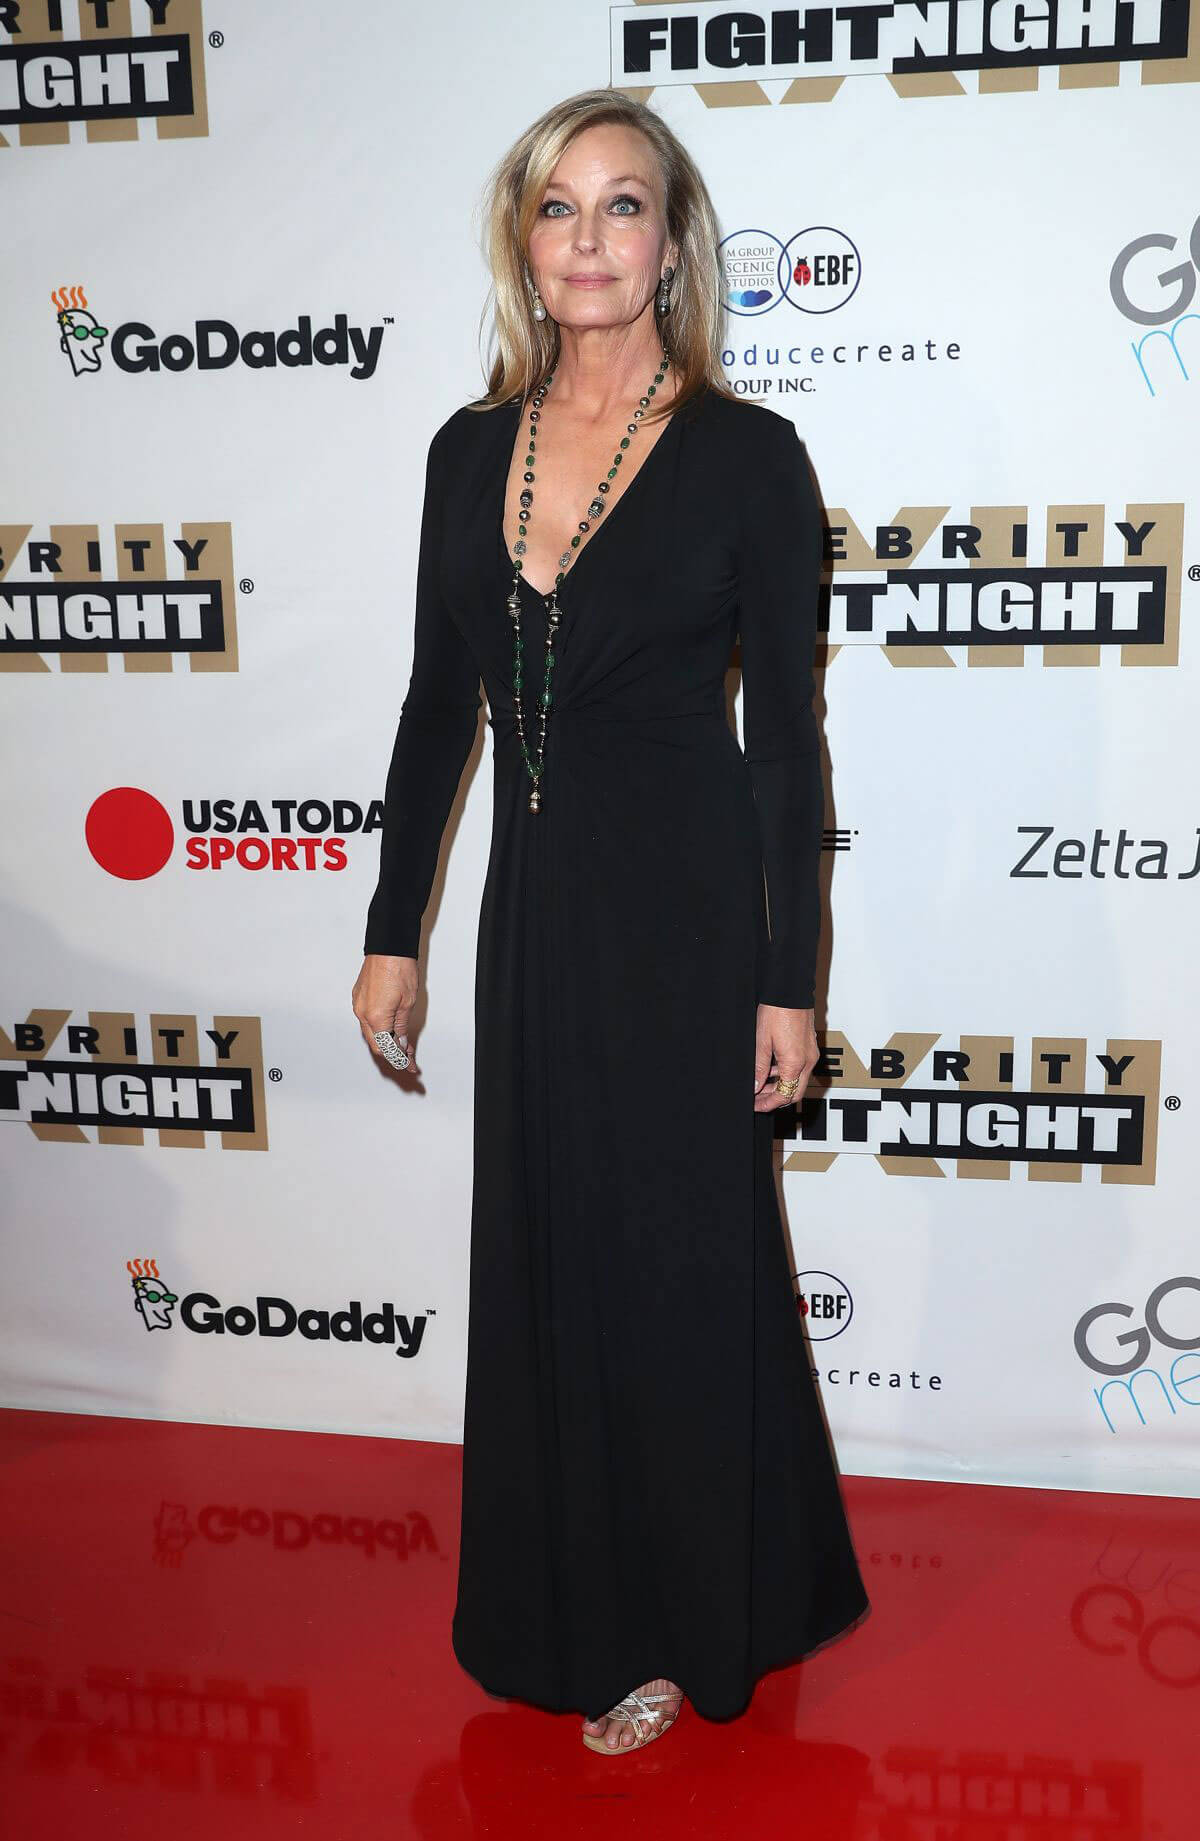 Bo Derek Stills at Muhammad Ali's Celebrity Fight Night in Arizona